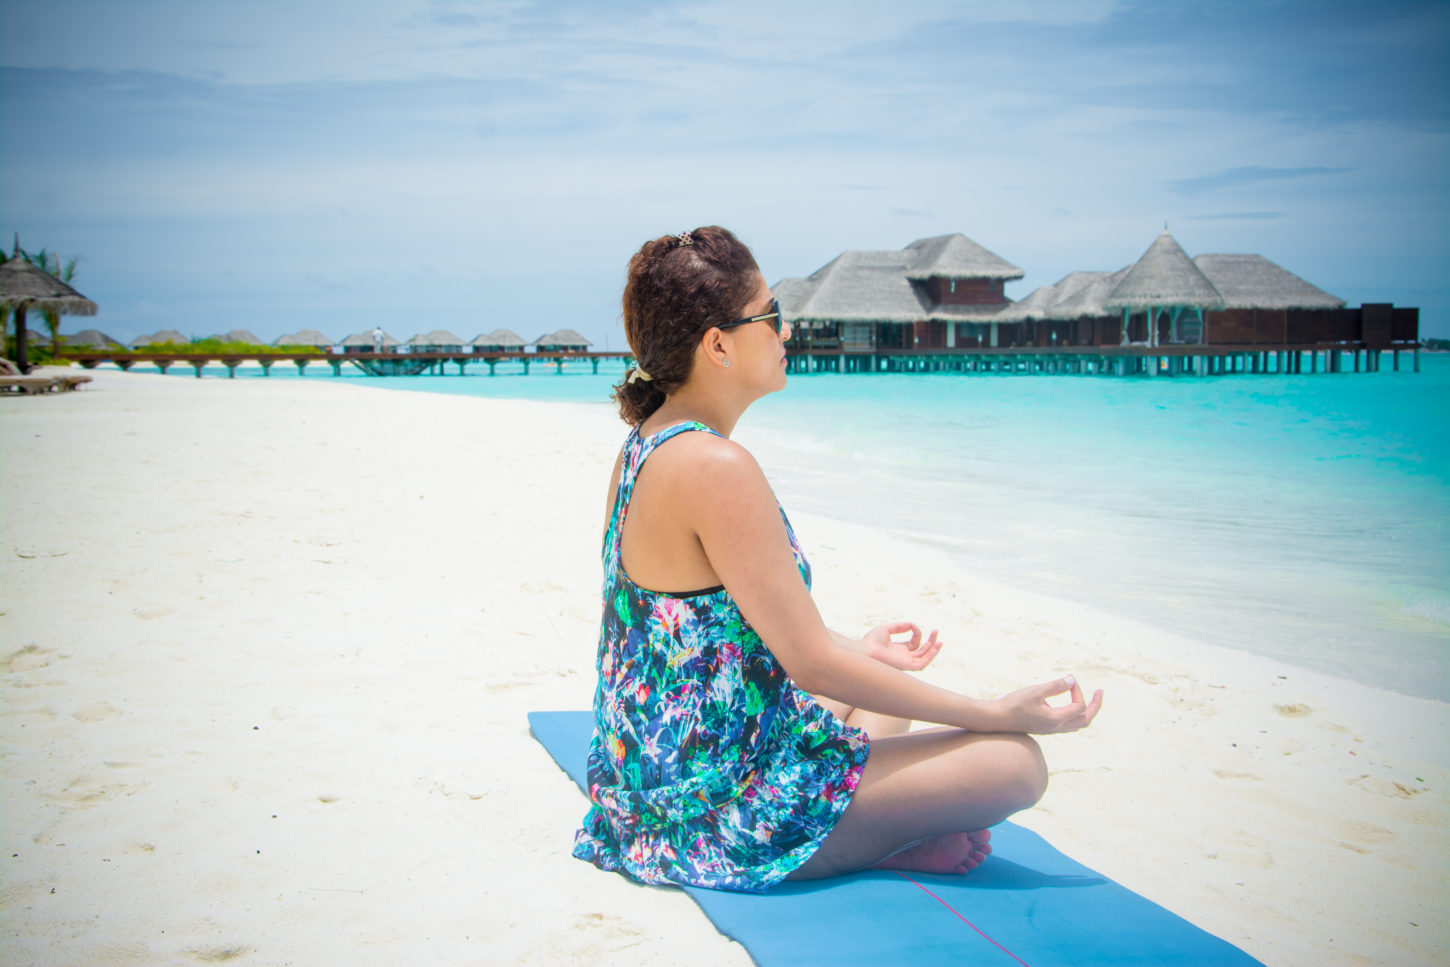 Meditation at the beach in the Maldives